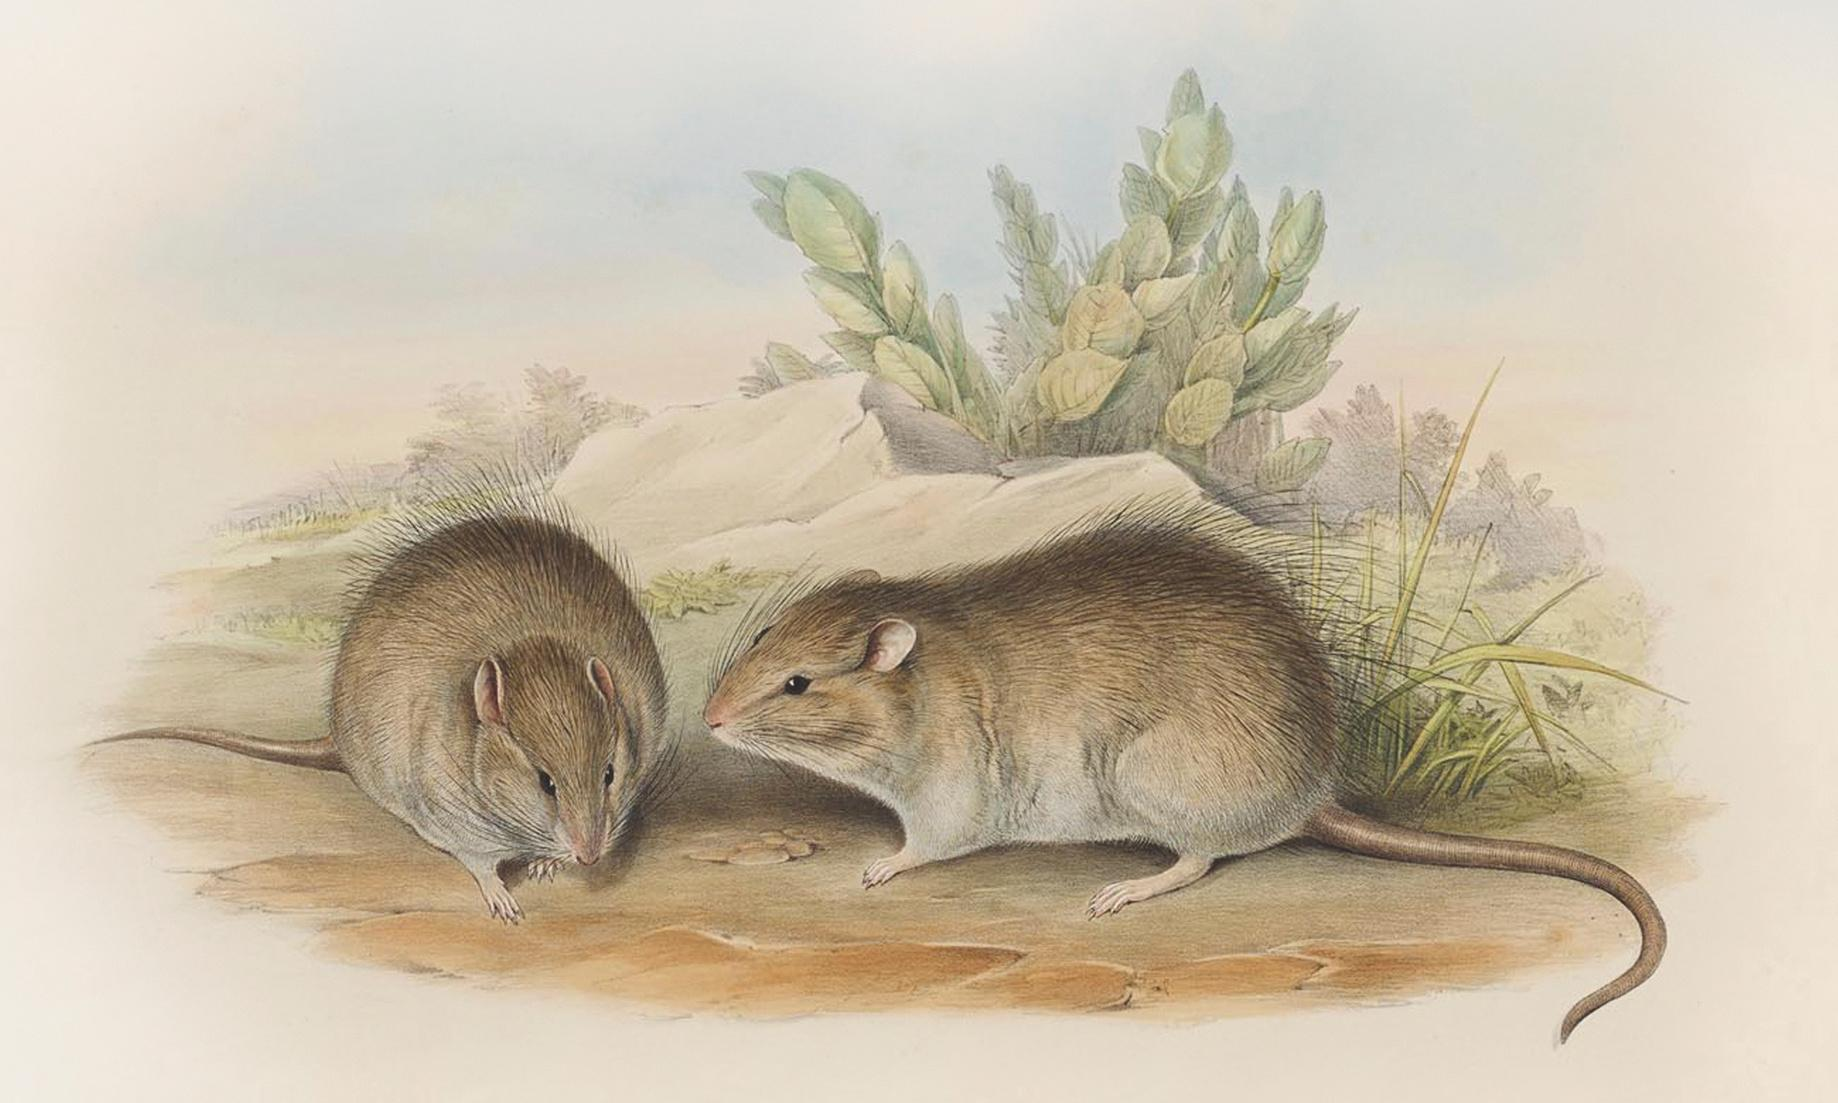 For the love of rodents: why Australia should be enchanted by its long-haired rat